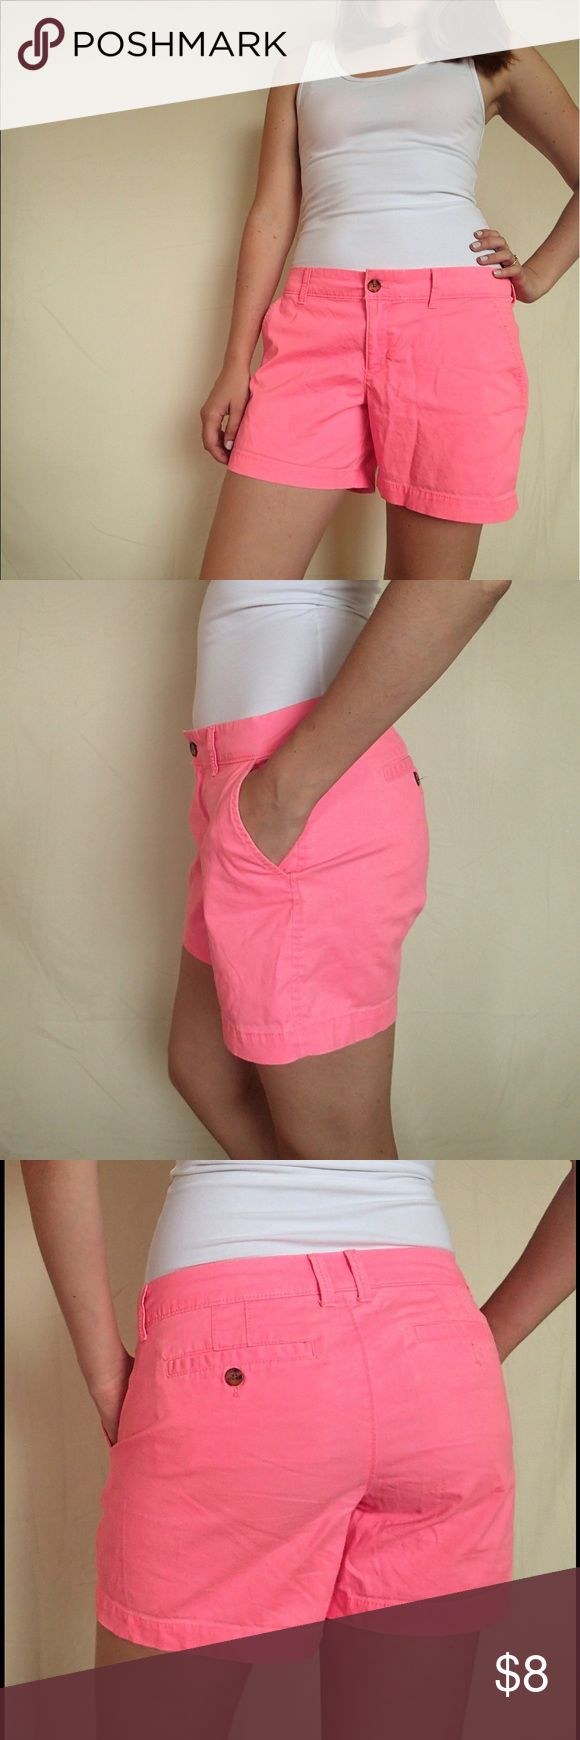 Old Navy neon pink shorts Bright pink shorts, cute, casual, and comfy, excellent for warm weather. Mid-thigh . Tag says 6, but I'm a 6 and they were always kind if loose on me ✨measurements upon request✨ Old Navy Shorts